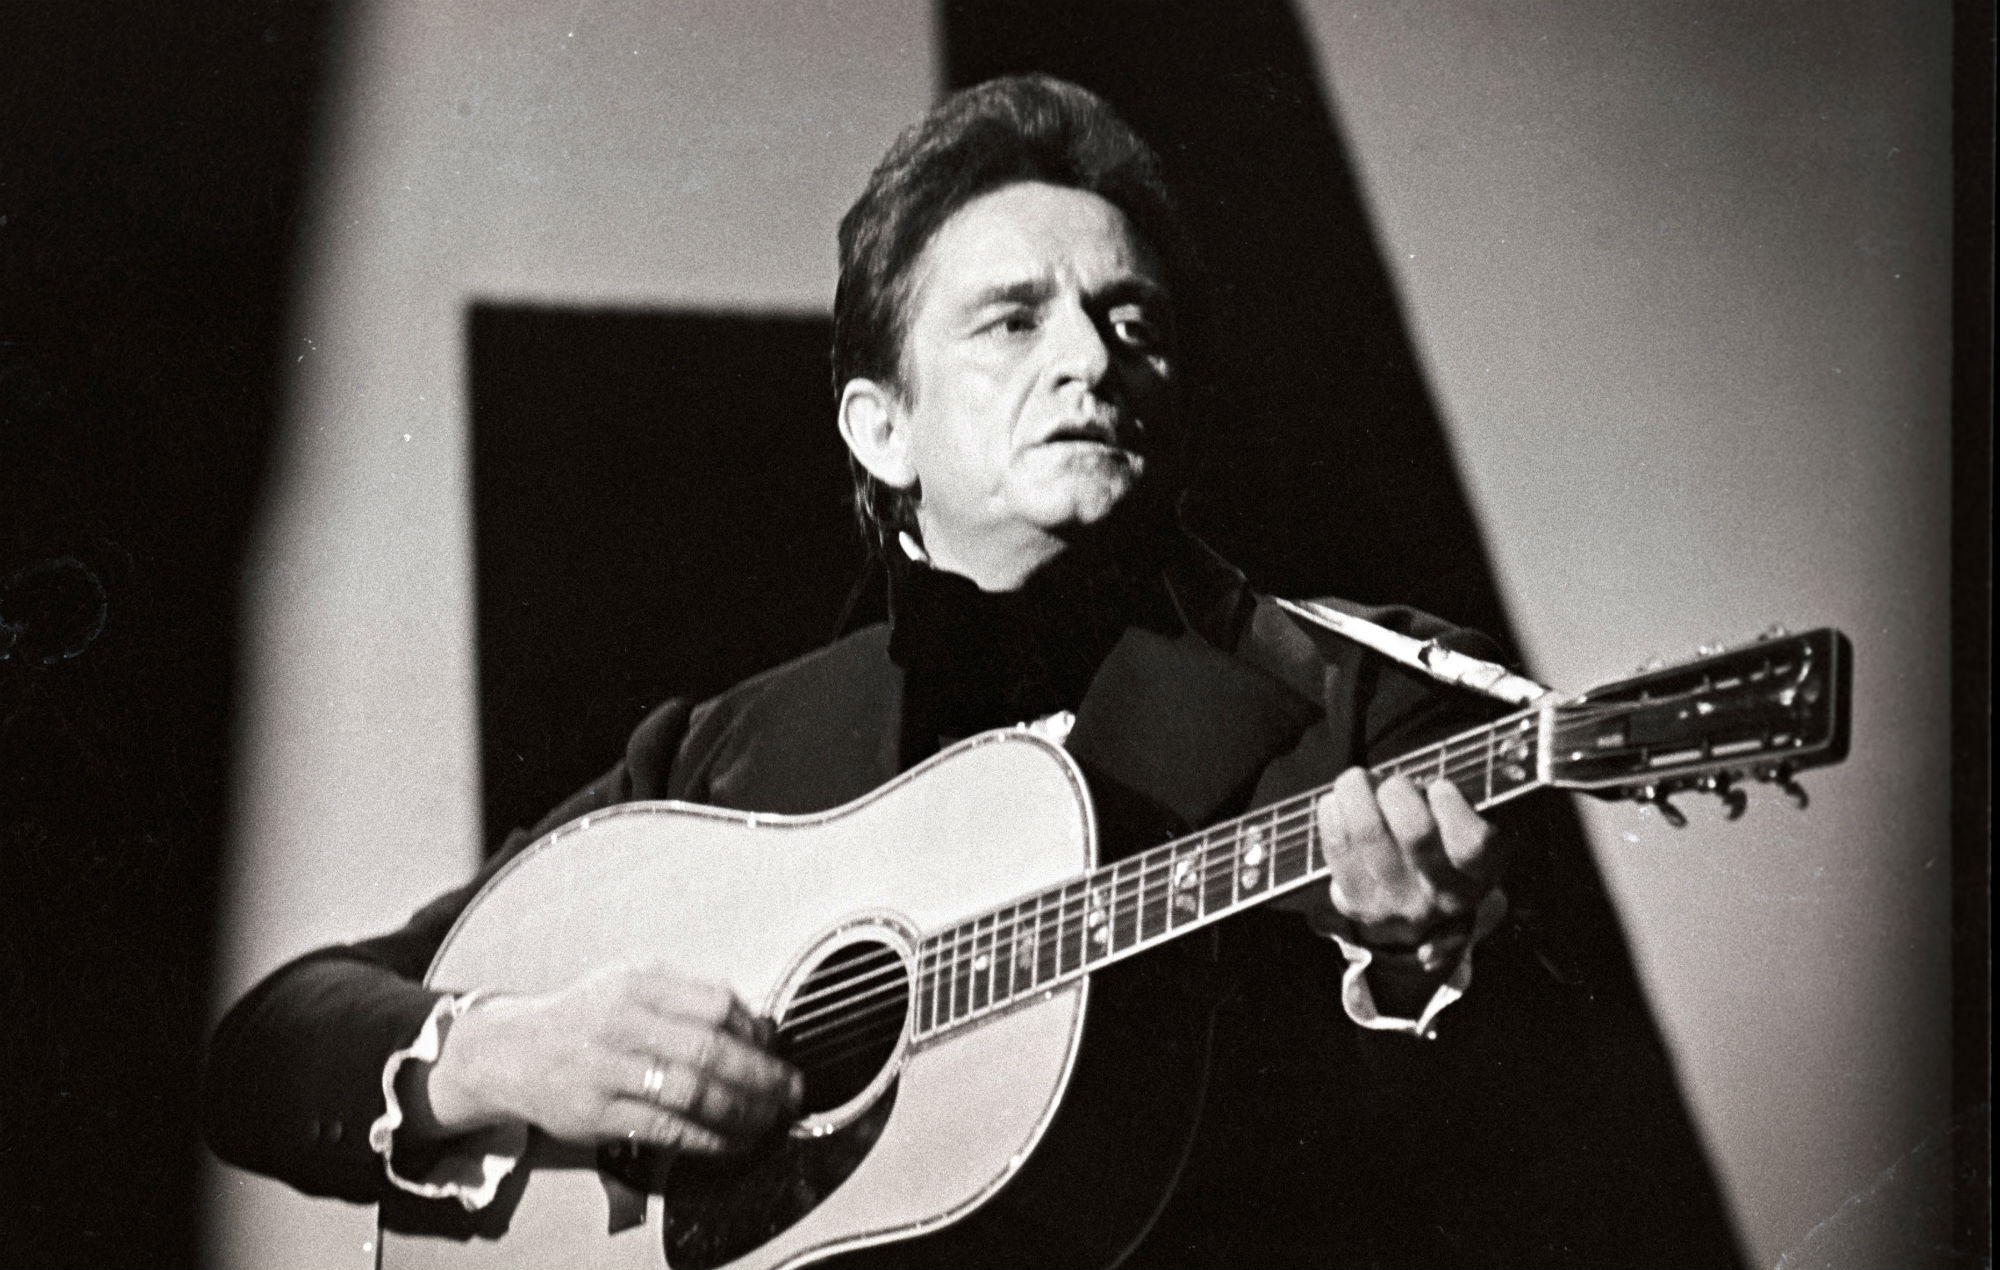 Johnny Cash S Music Reimagined By Royal Philharmonic Orchestra For New Album